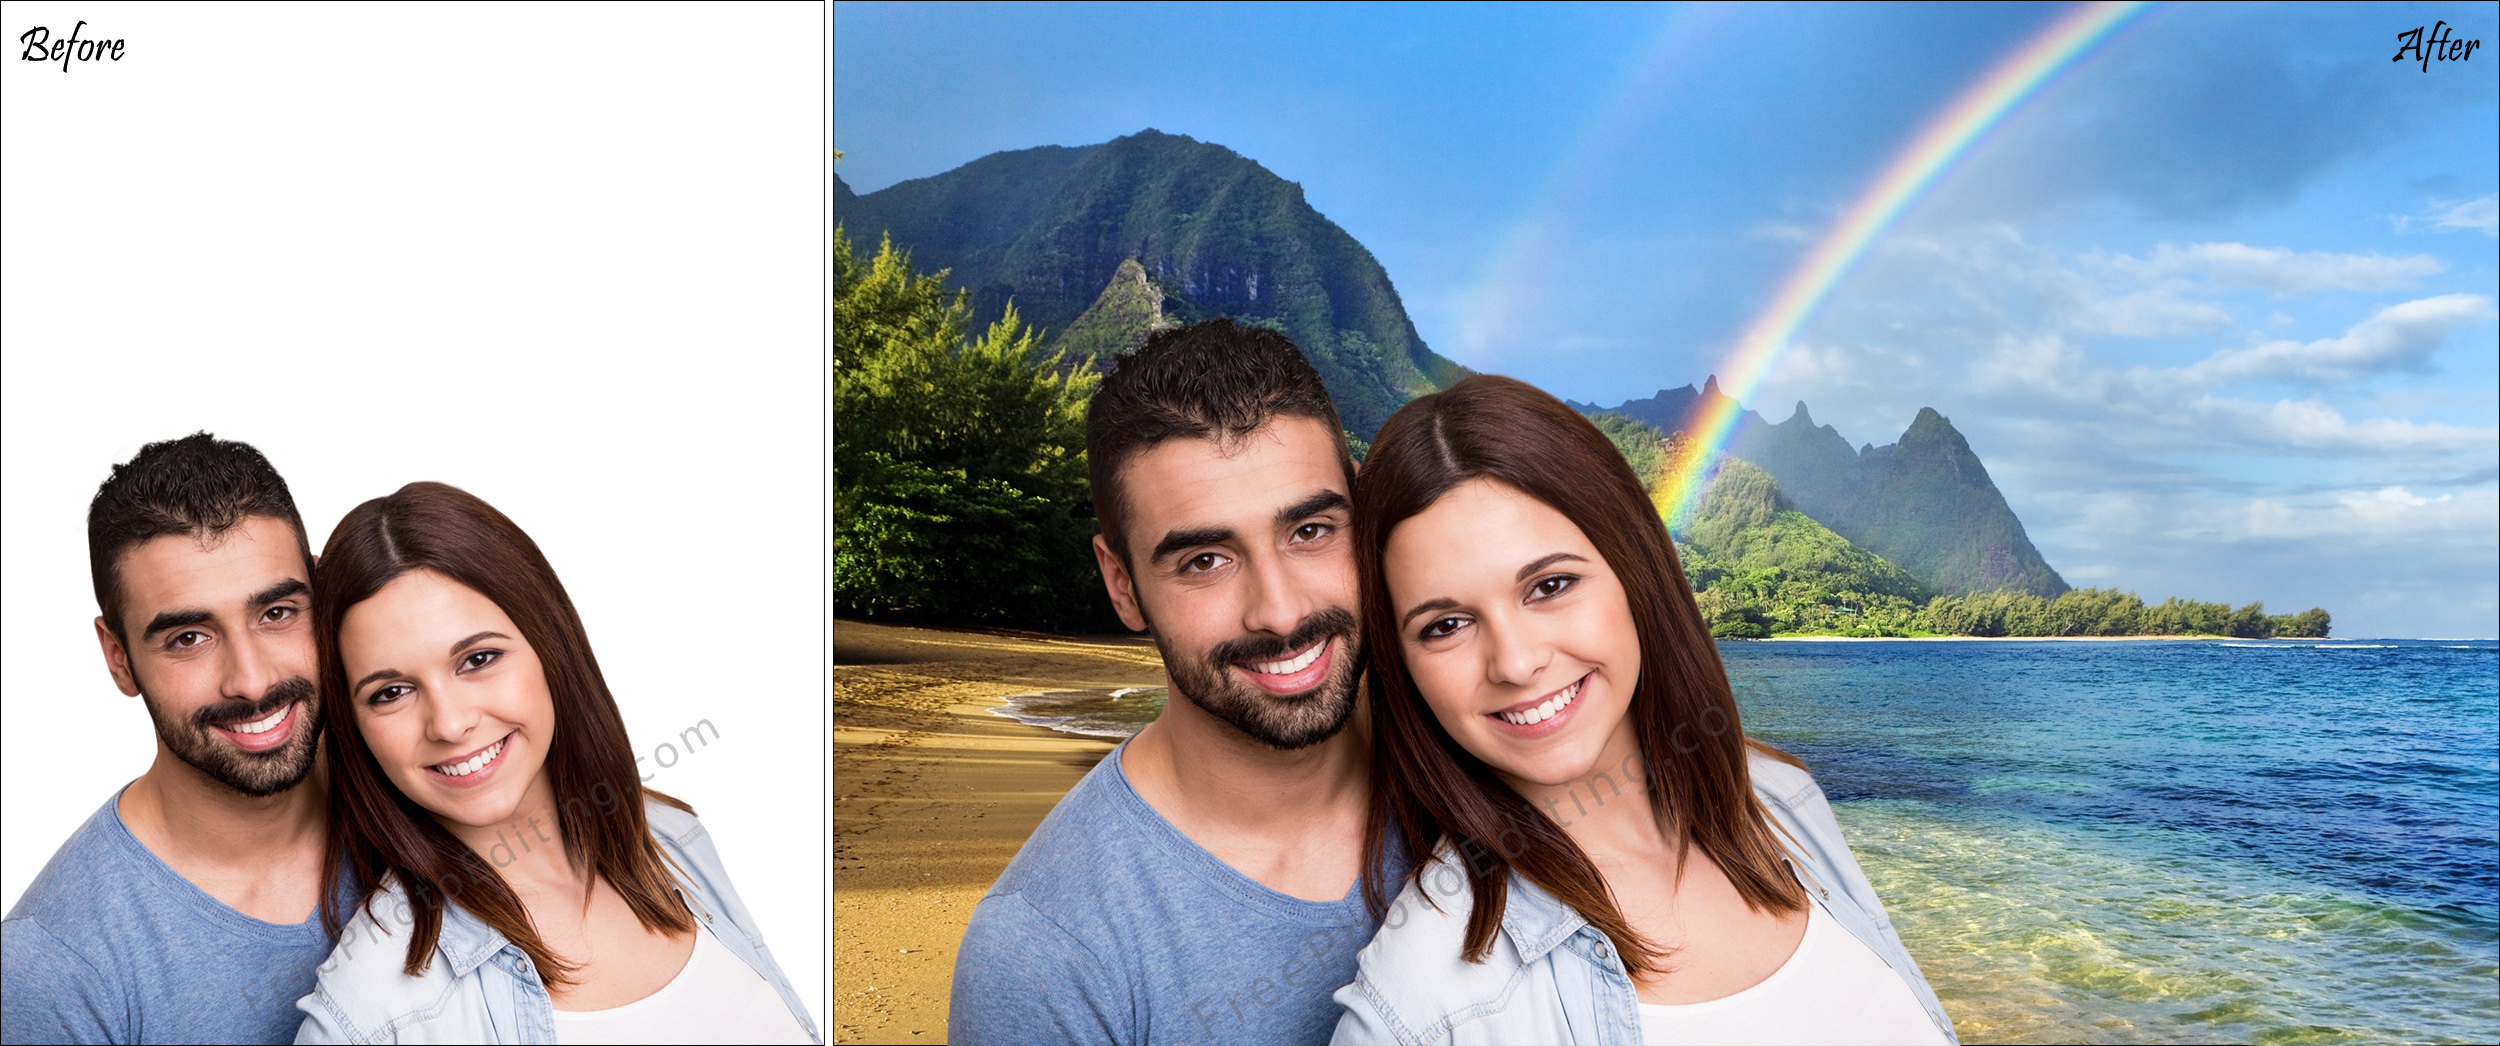 Online Photo Editing Background  Add/Remove Background from Image - FreePhotoEditing